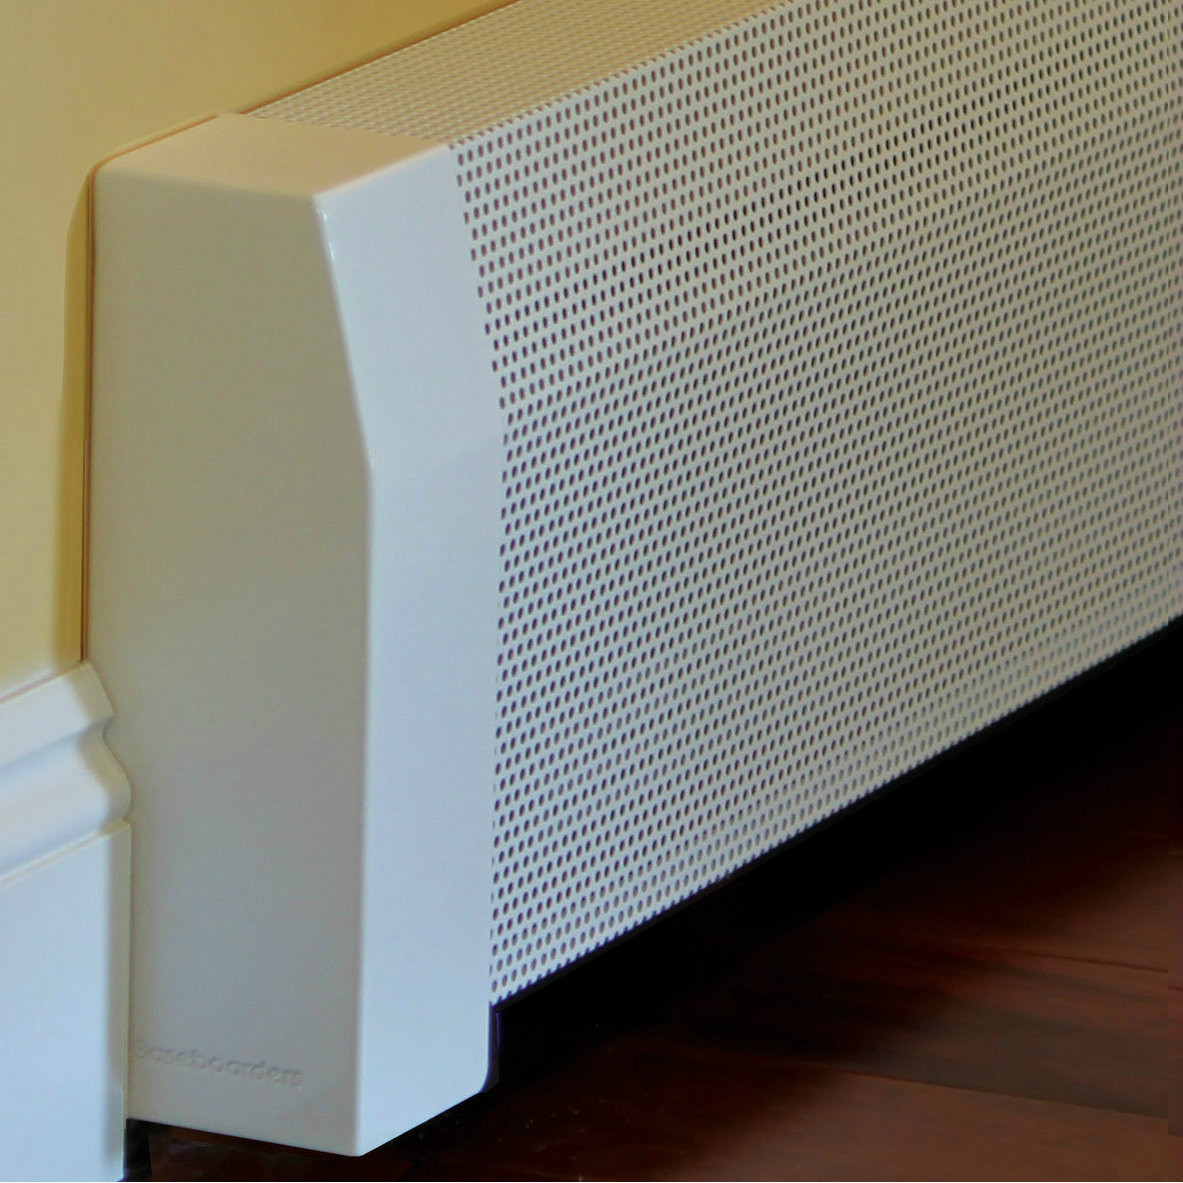 tall profile slant fin baseboard radiator cover